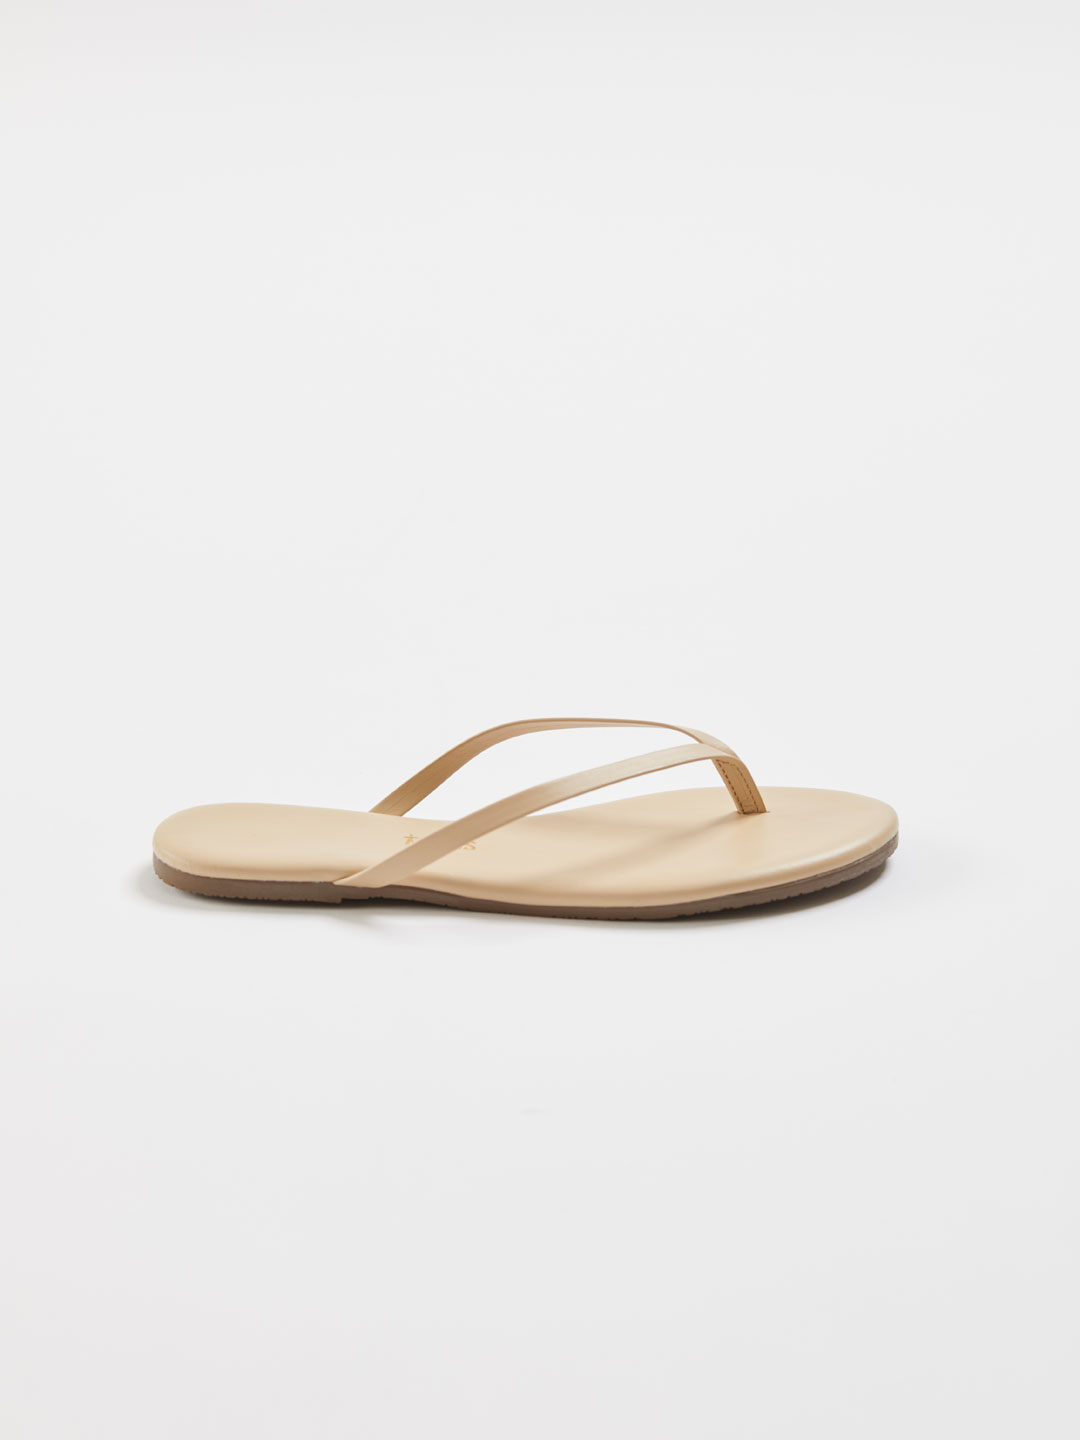 Most Loved Signature Flip Flop Sandals - Seashell/Off White